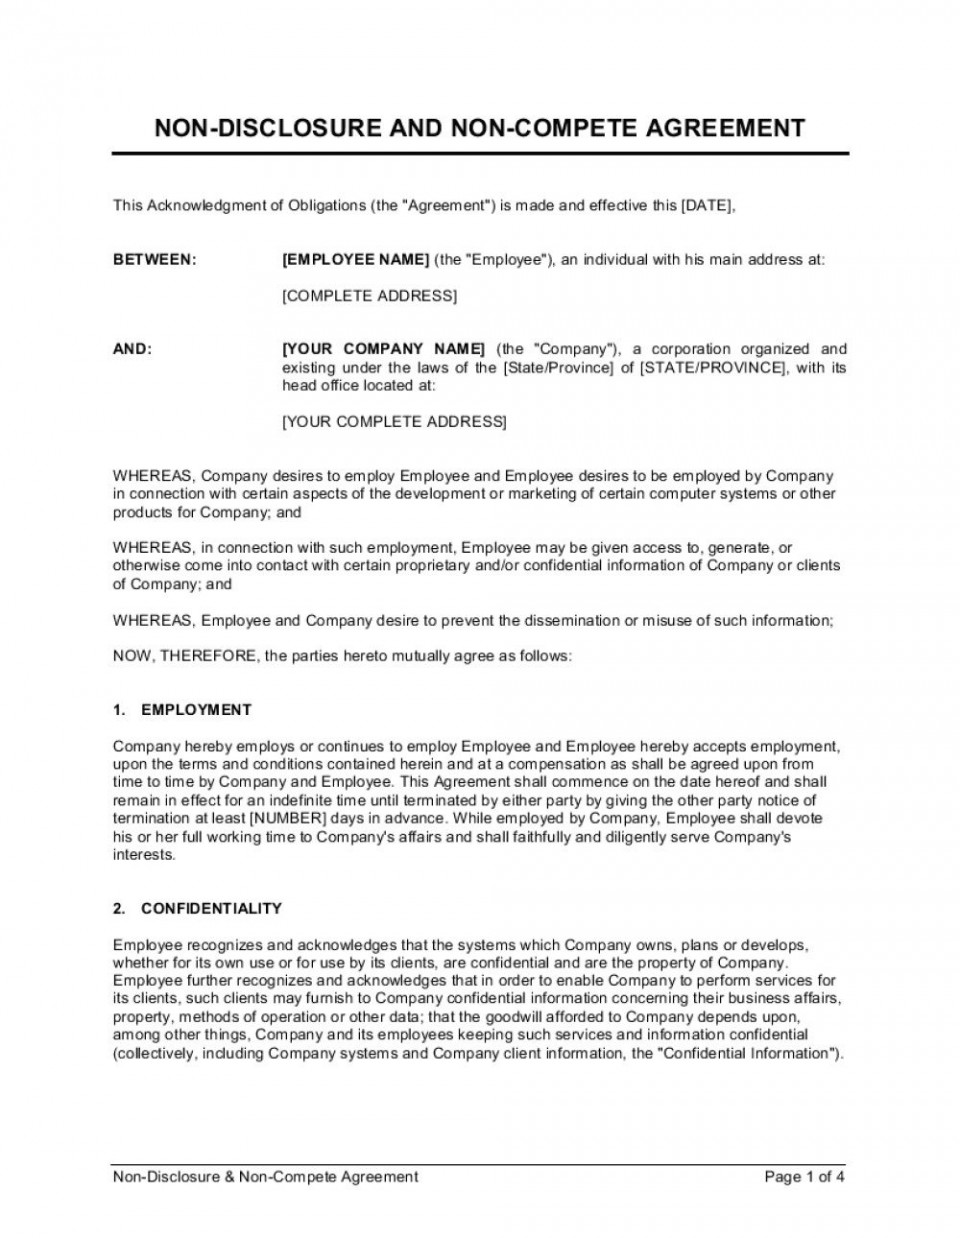 008 Archaicawful Employee Non Compete Agreement Template Example  Free Confidentiality Non-compete Disclosure960